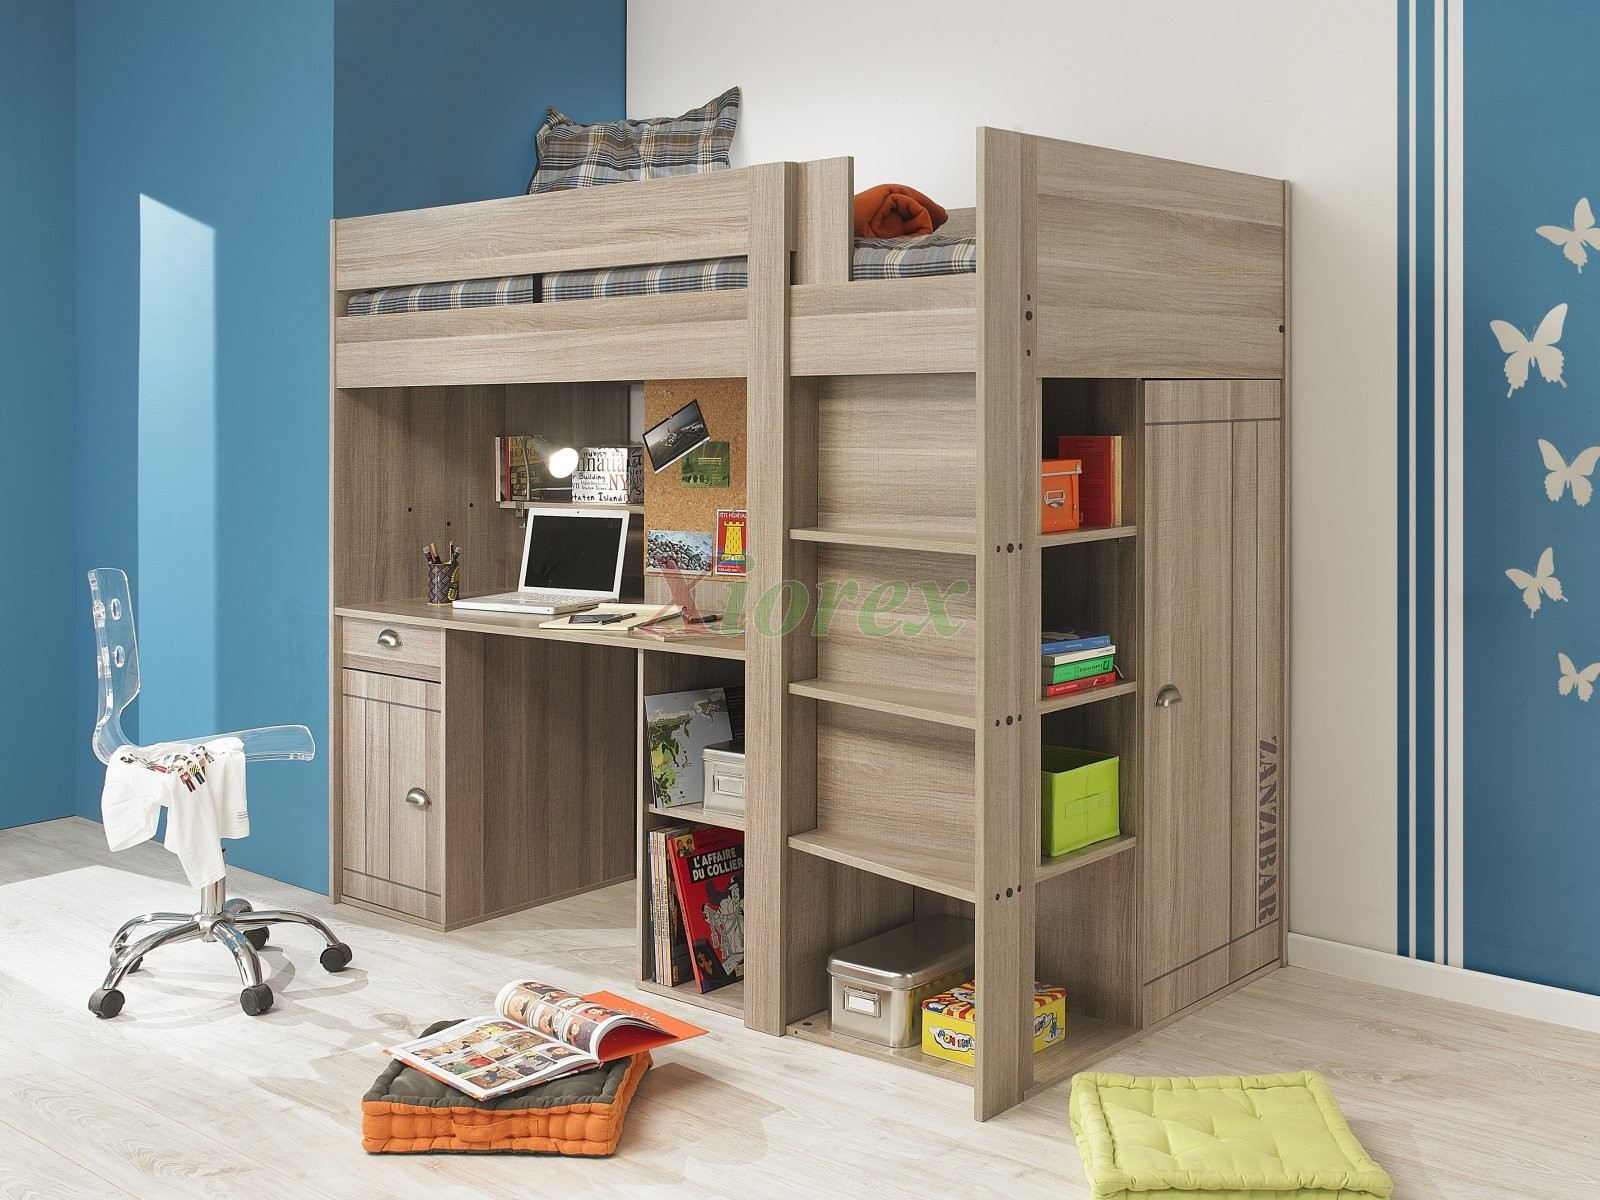 Gami Largo Loft Beds For Teens Canada With Desk Amp Closet